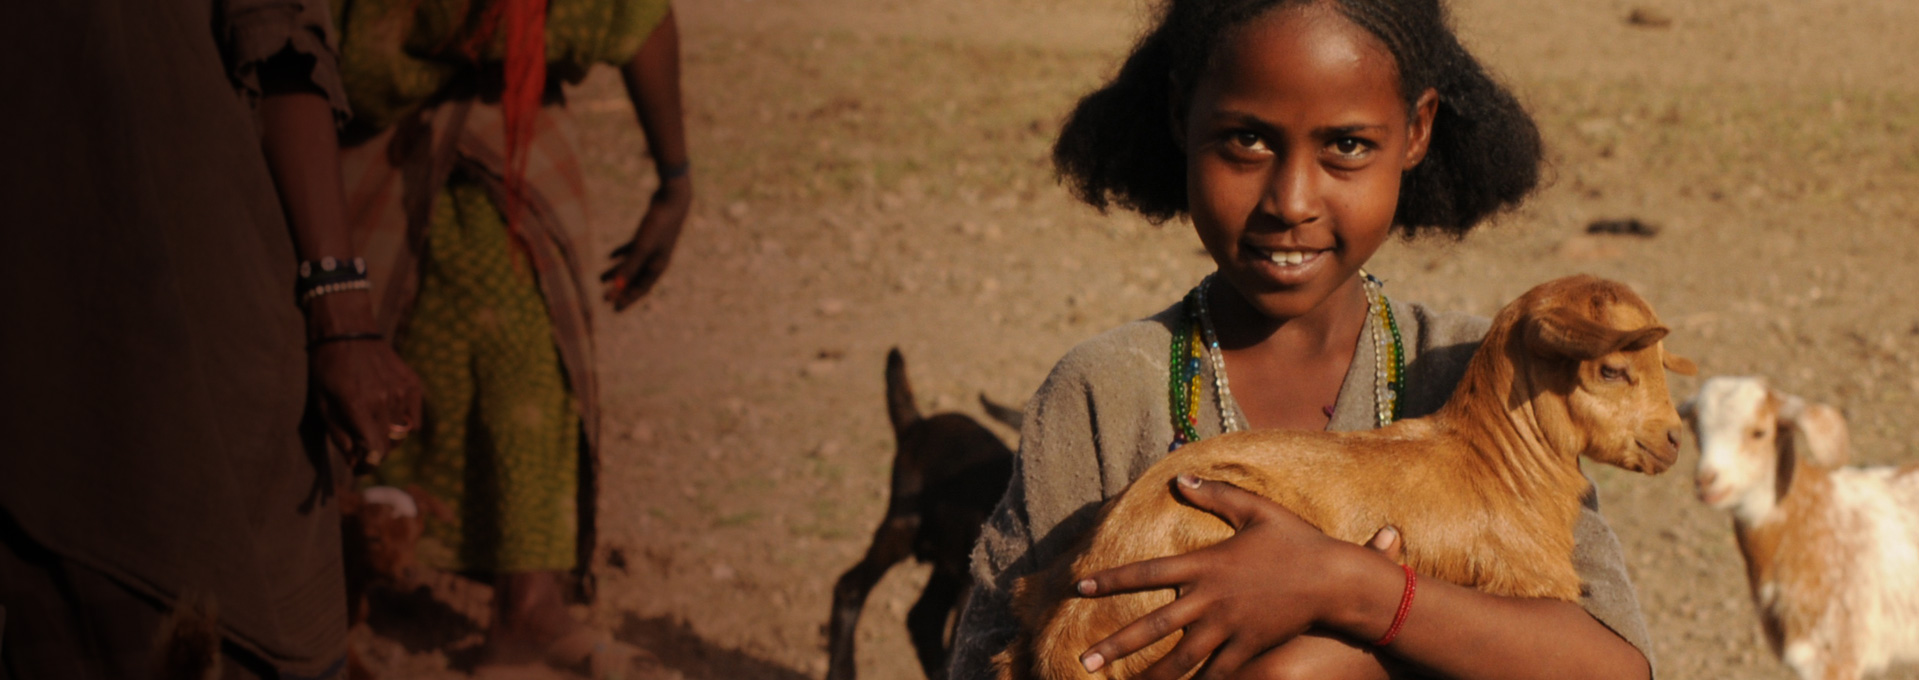 Girl in Africa holding a charity goat from Canadian Feed The Children